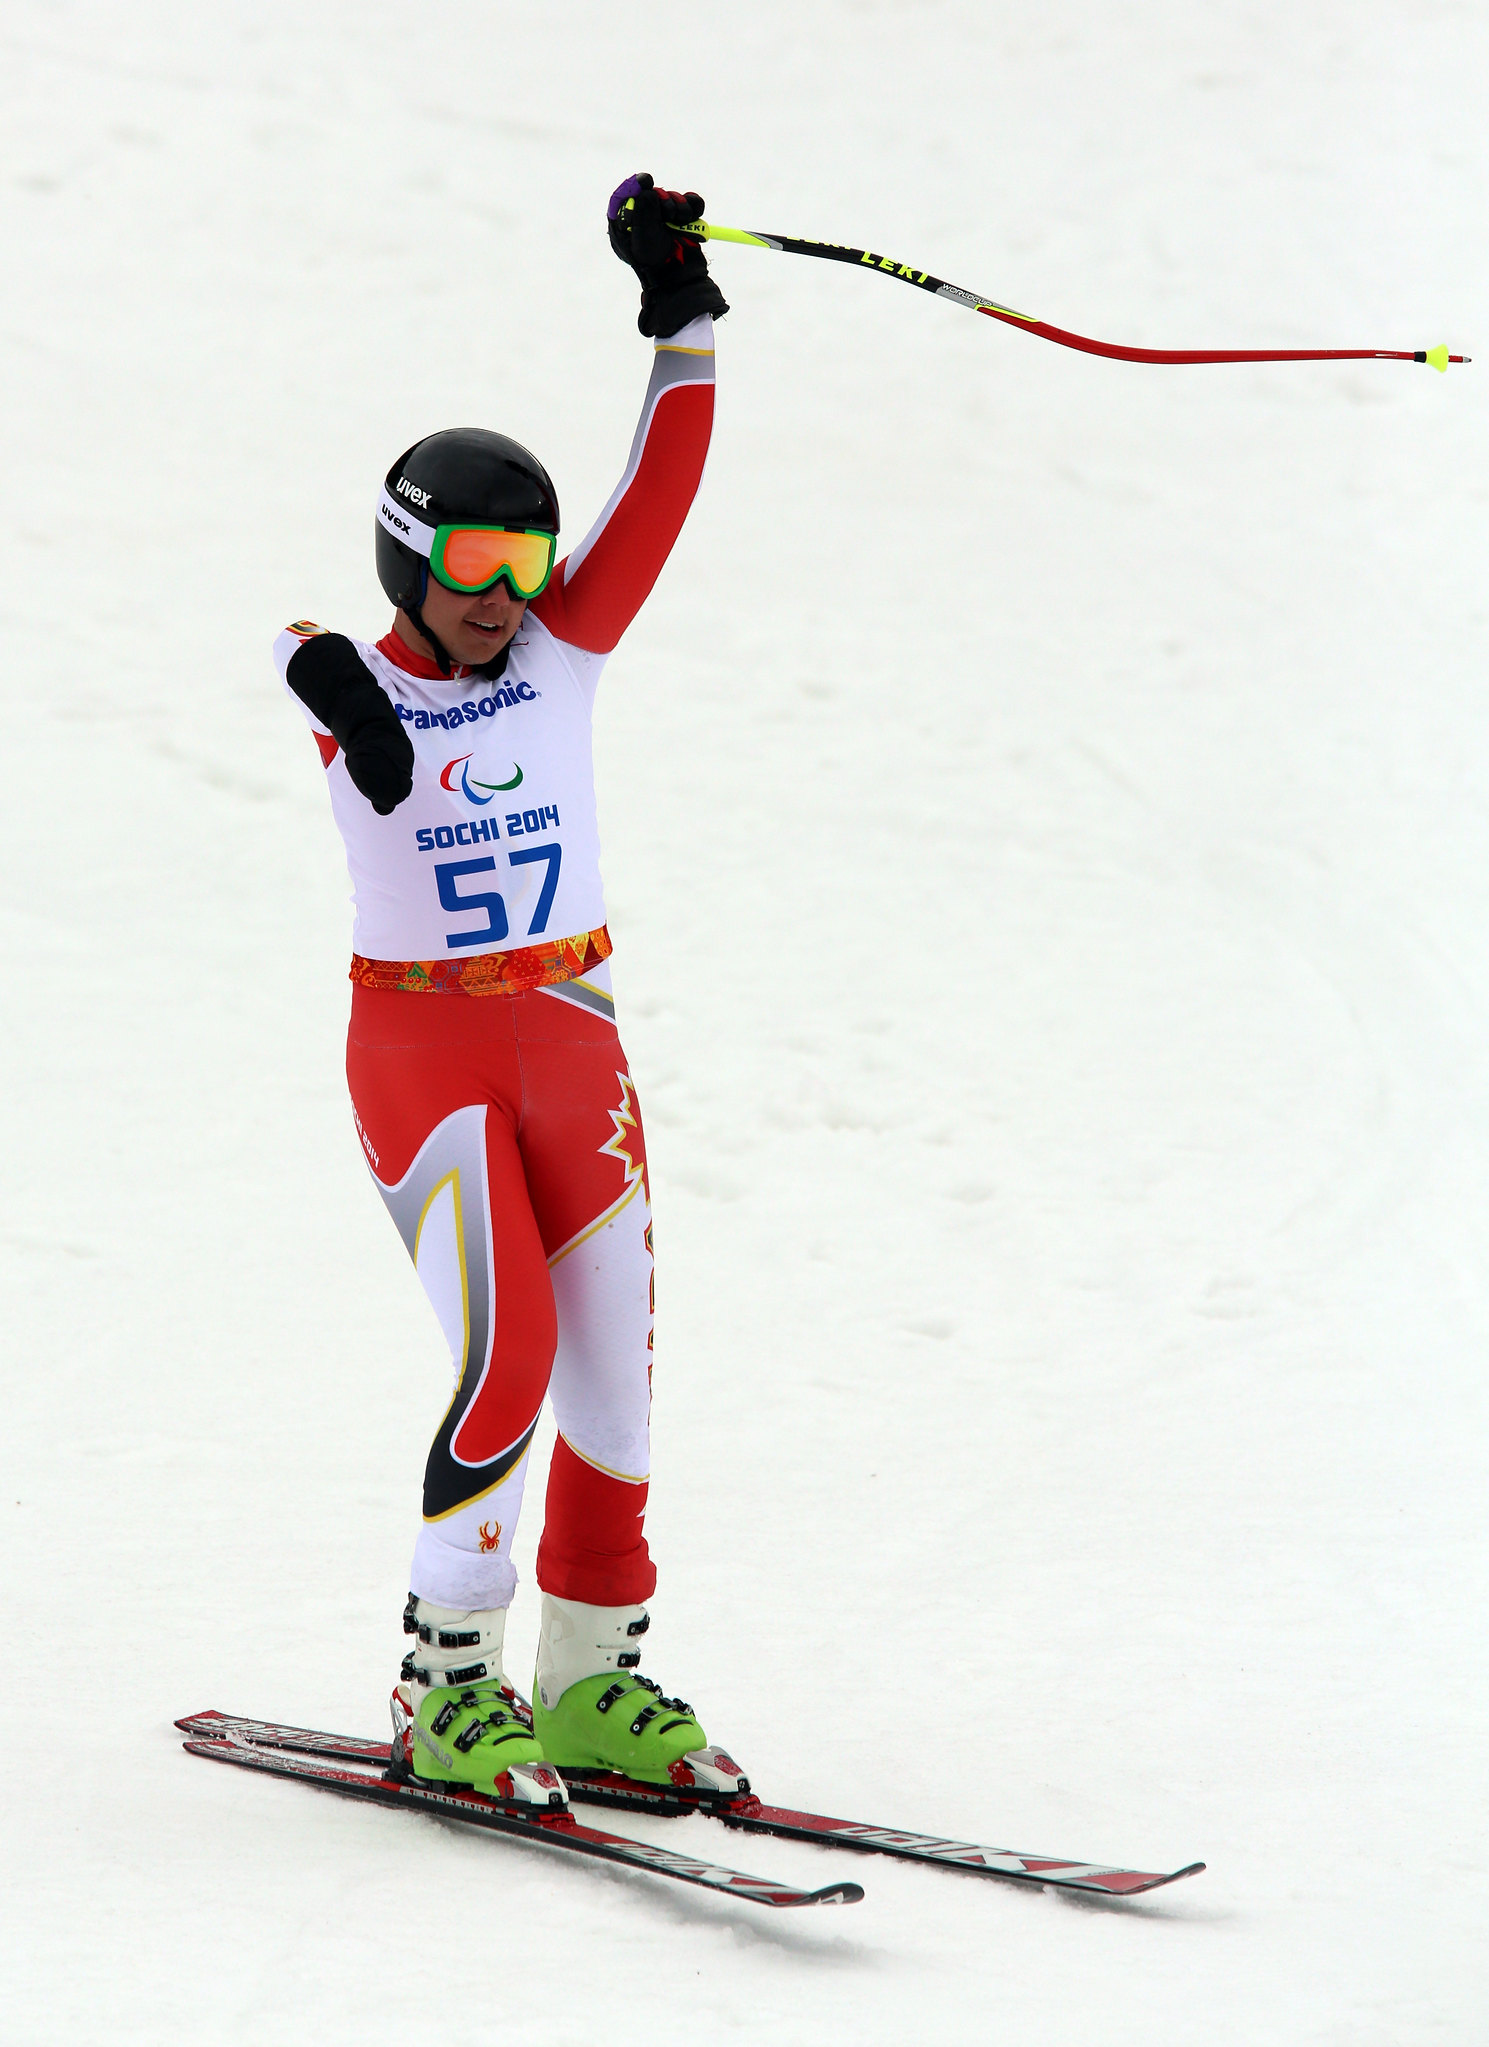 Kirk Schornstein competes in the super combined at the 2014 Paralympic Winter Games